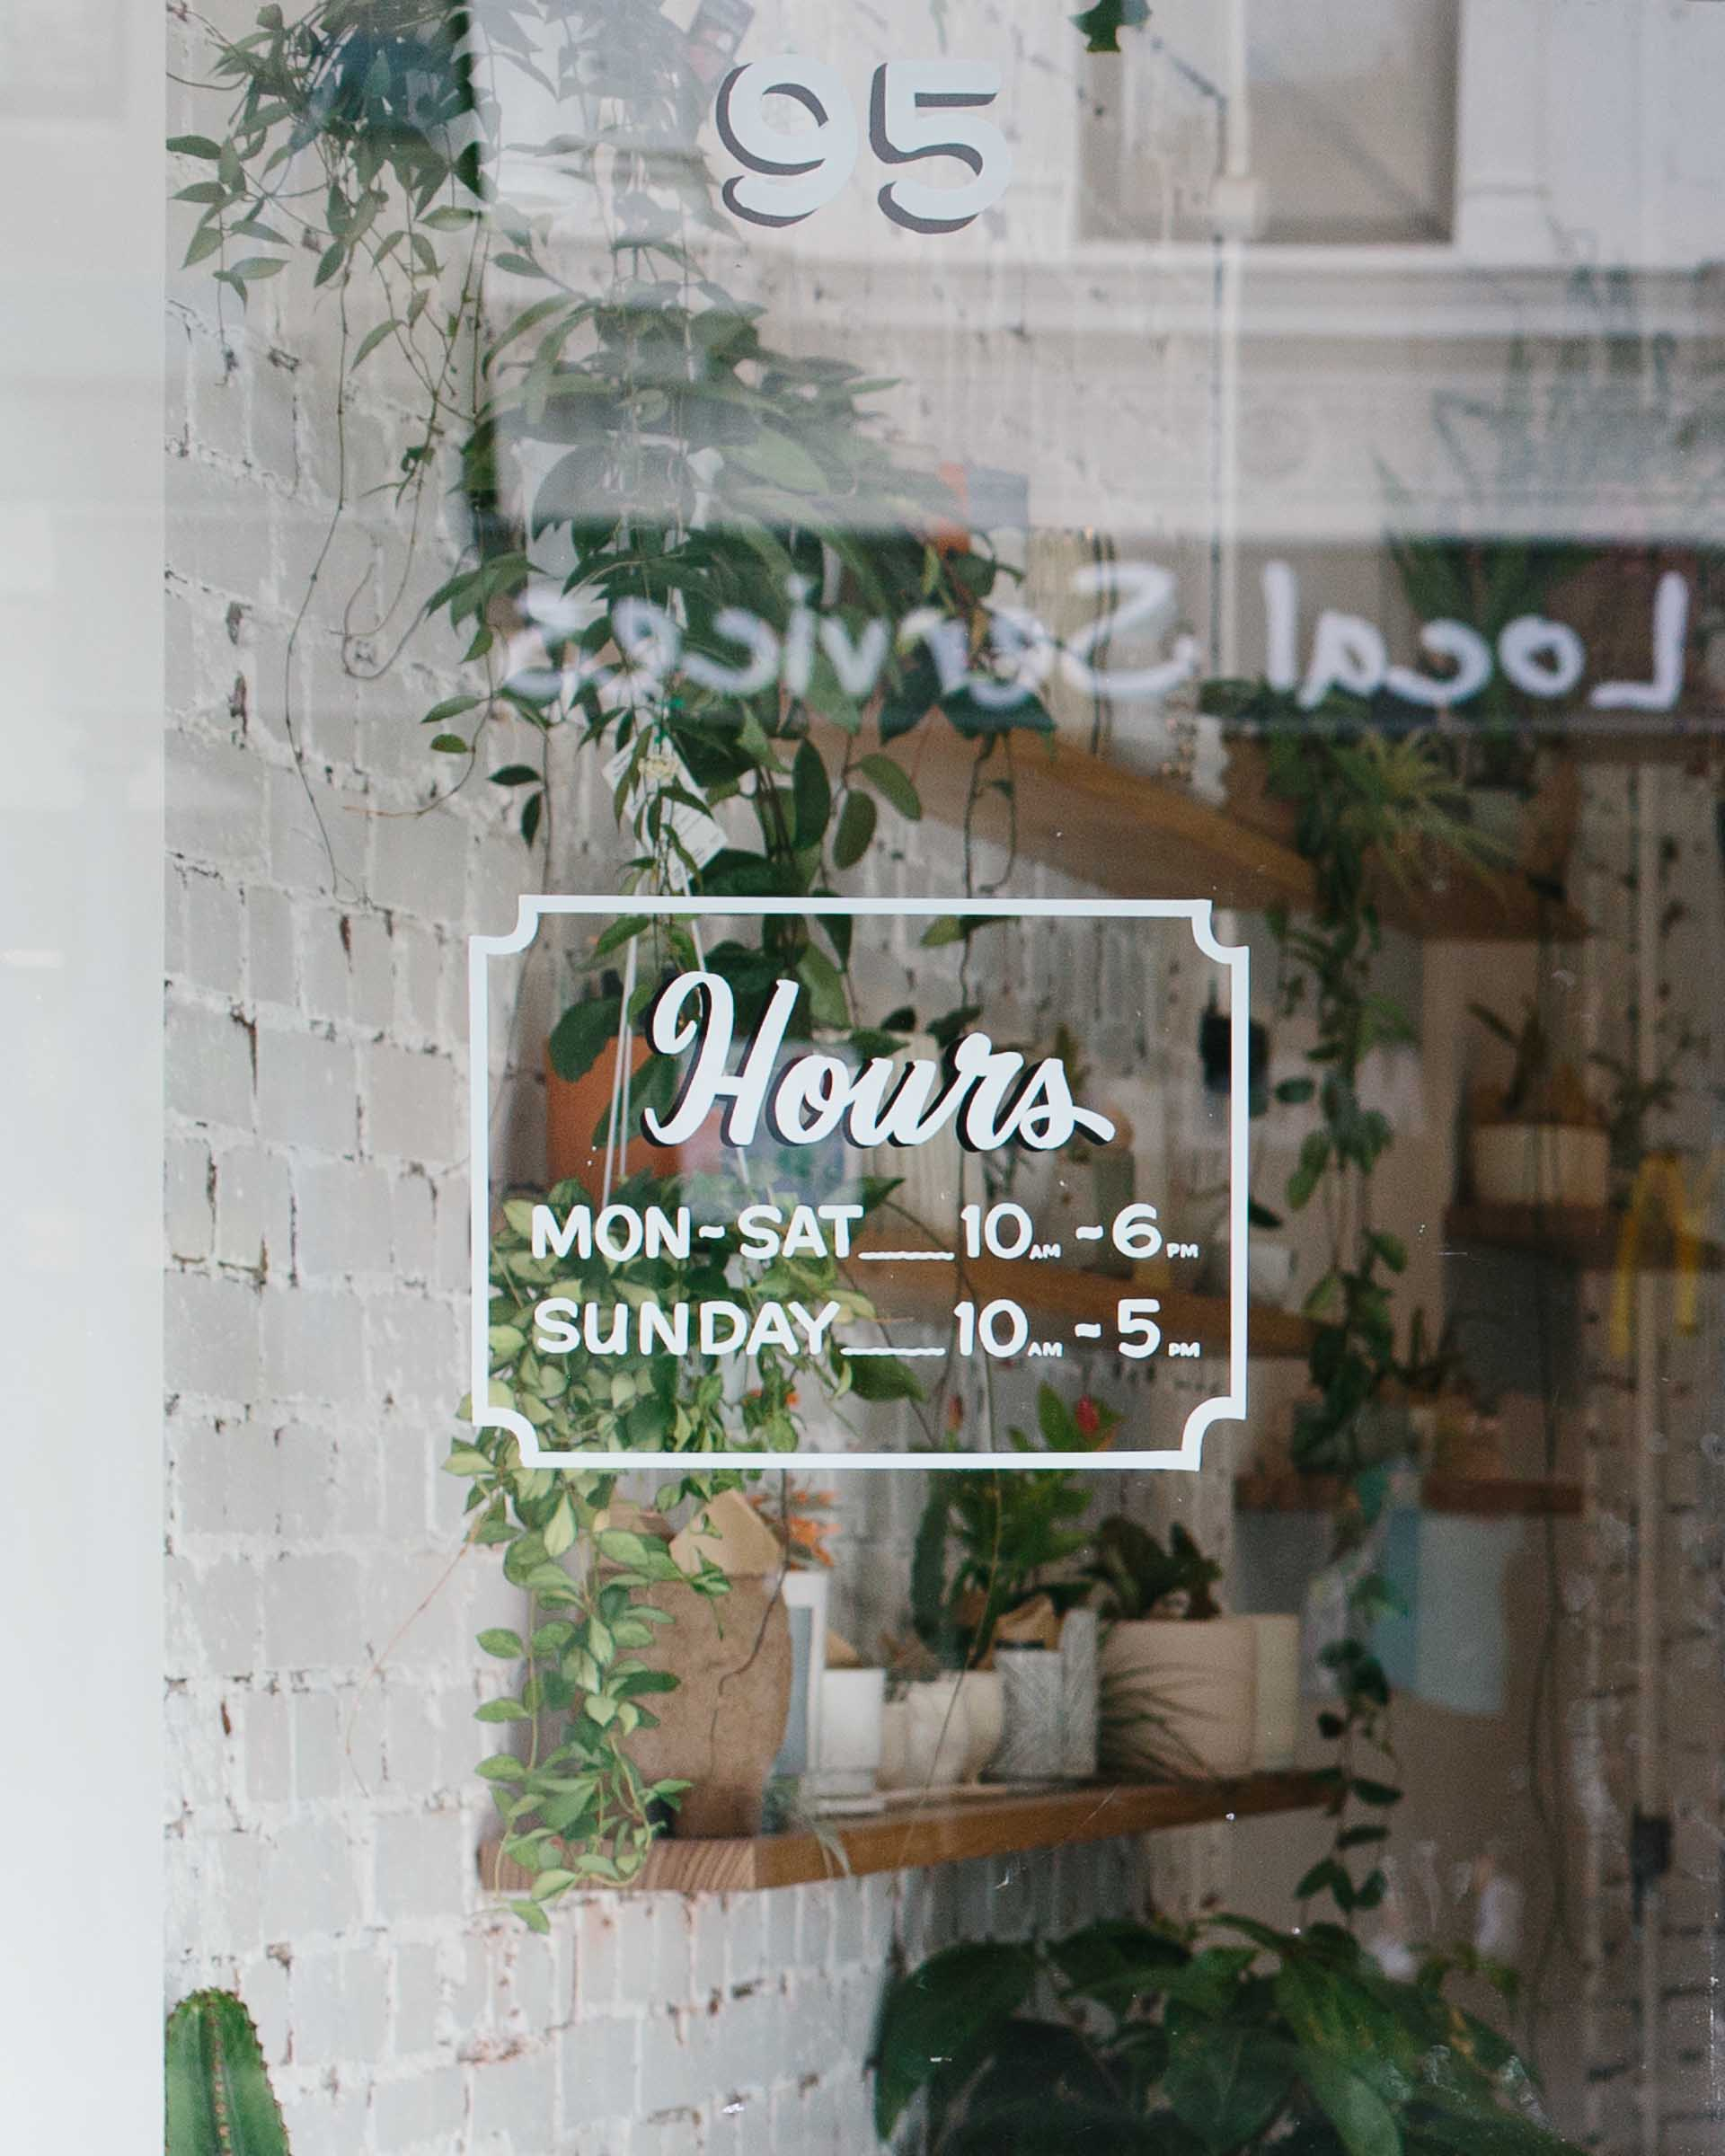 Shop front opening hours, hand painted signage